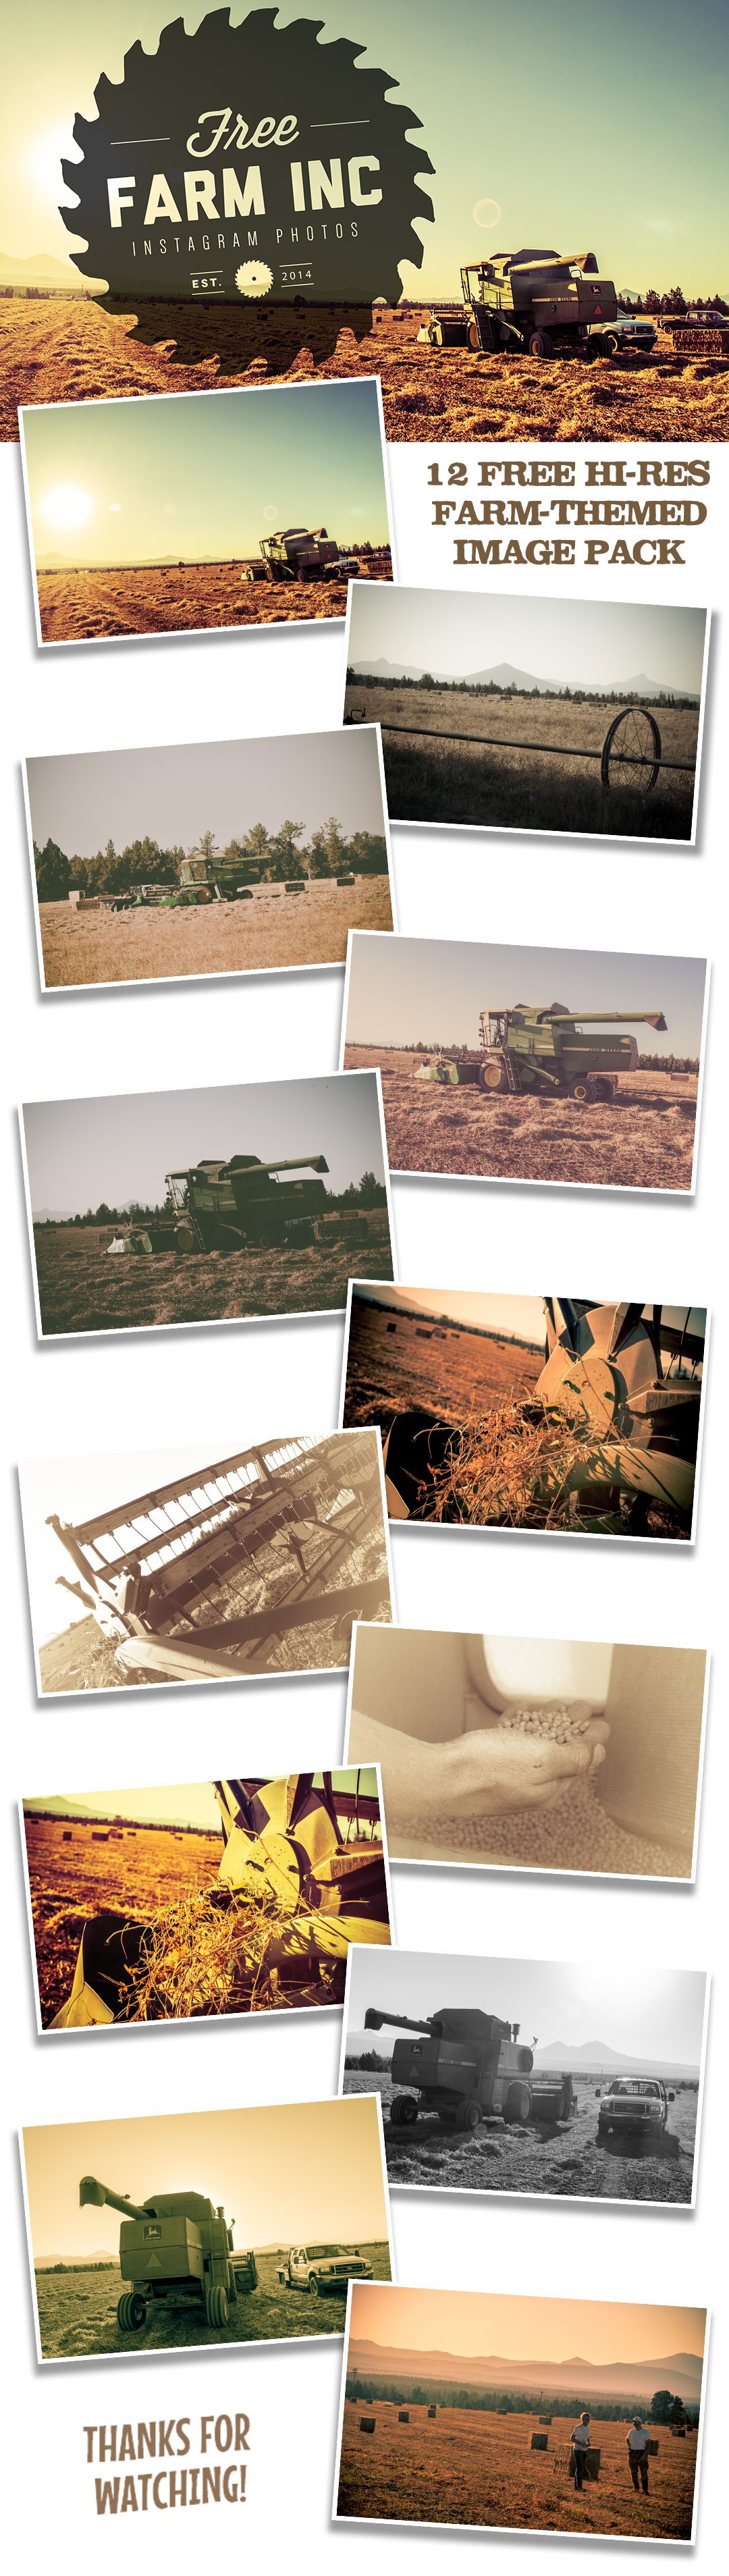 Insta-Farm Free Stock-Image Bundle